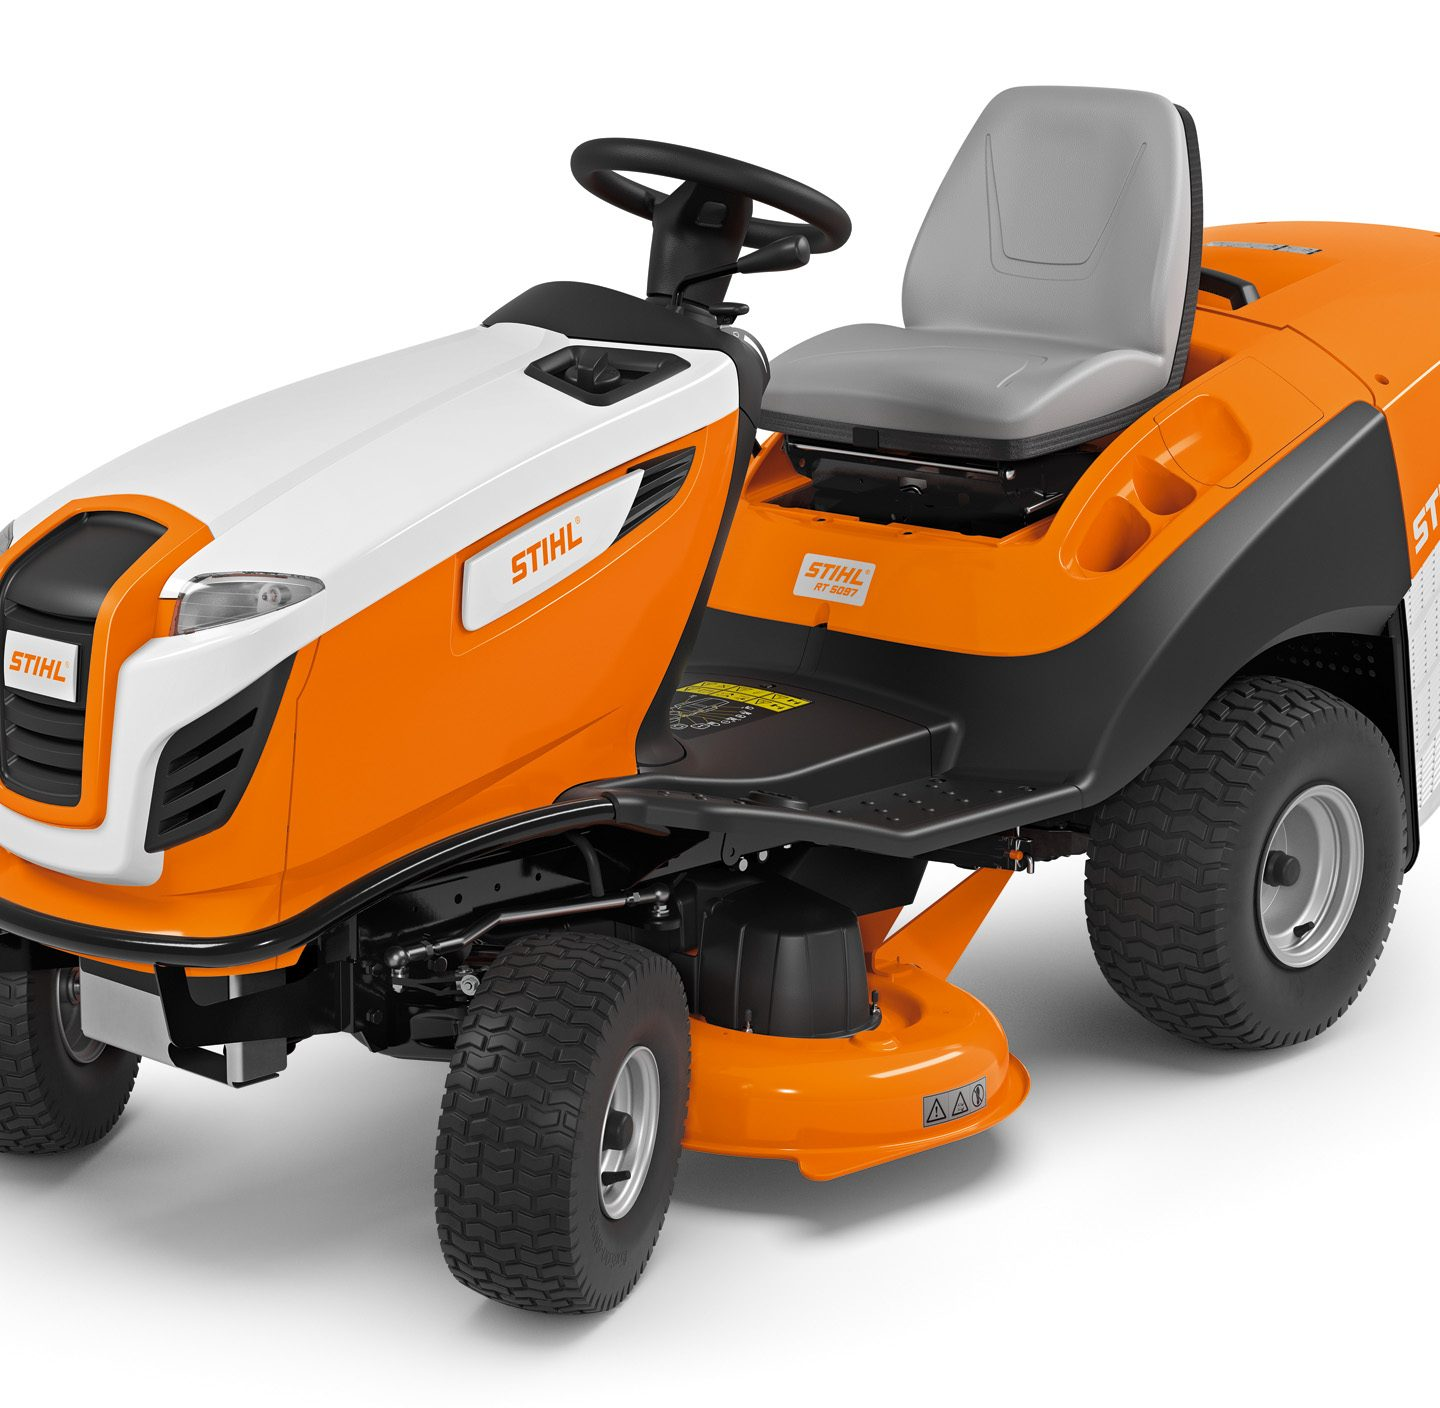 RT 5097 - COMPACT LAWN TRACTOR WITH EXCELLENT MOWING PERFORMANCE